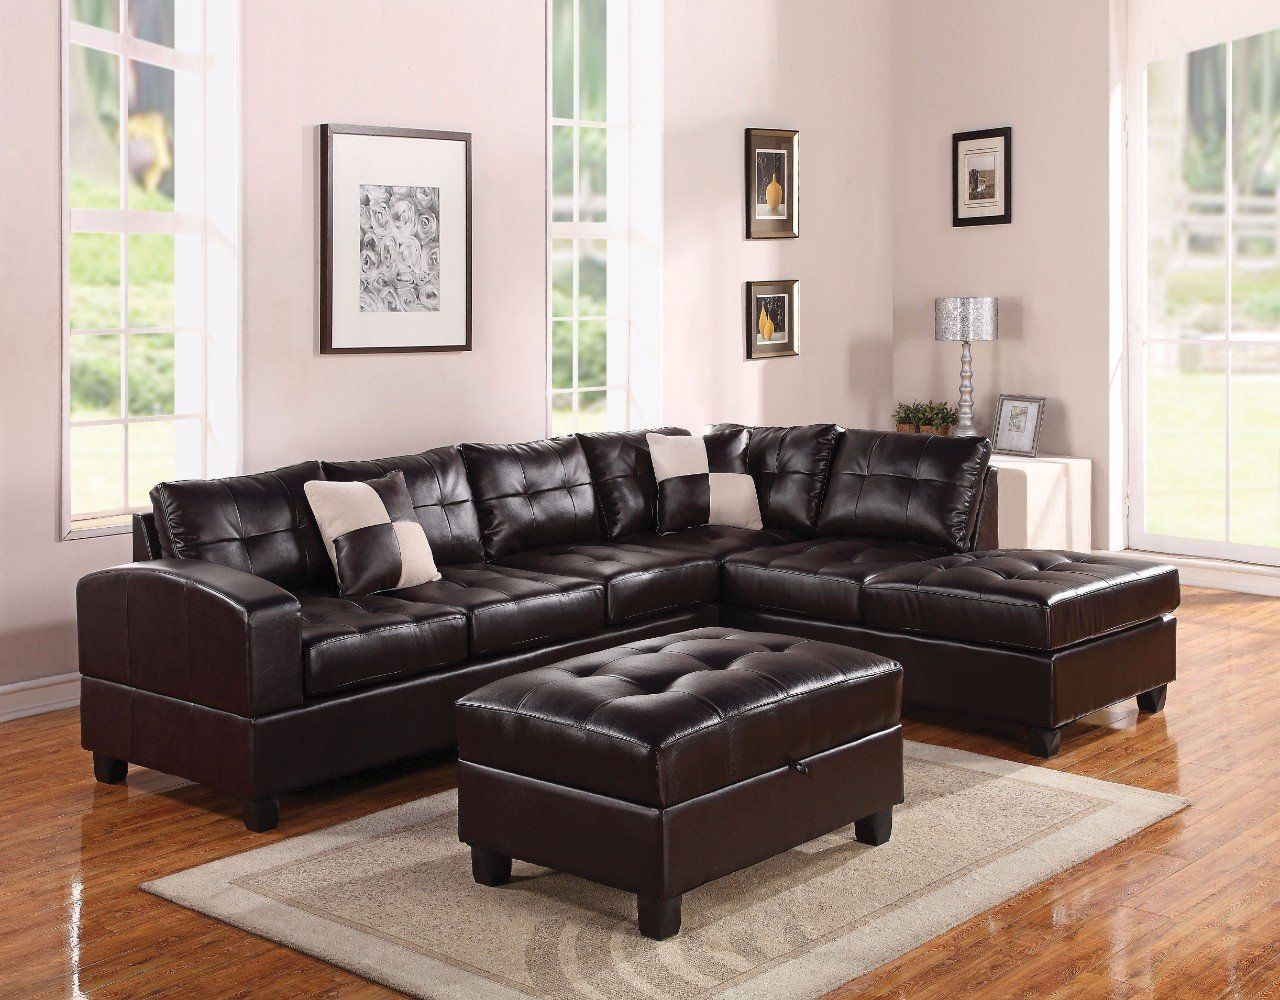 Bonded Leather Reversible Sectional Sofa With 2 Pillows Brown